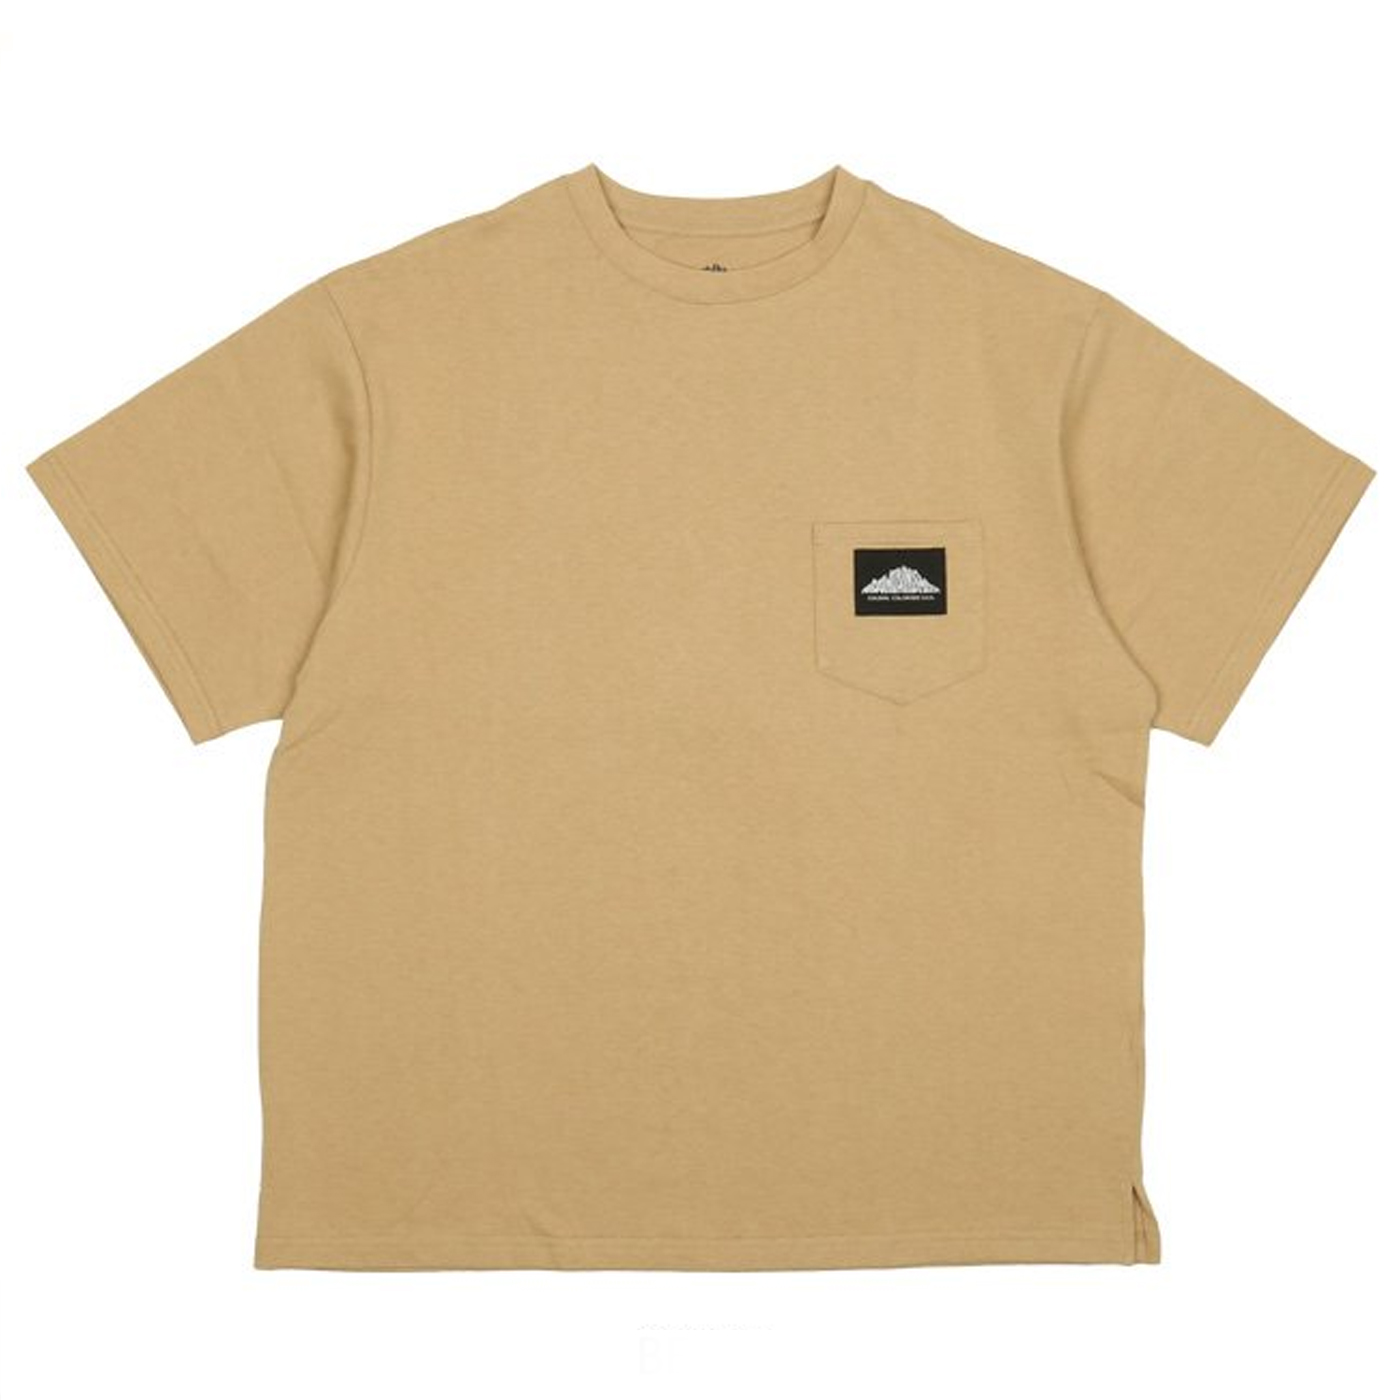 product: MS HISTORY / color: BEIGE 1